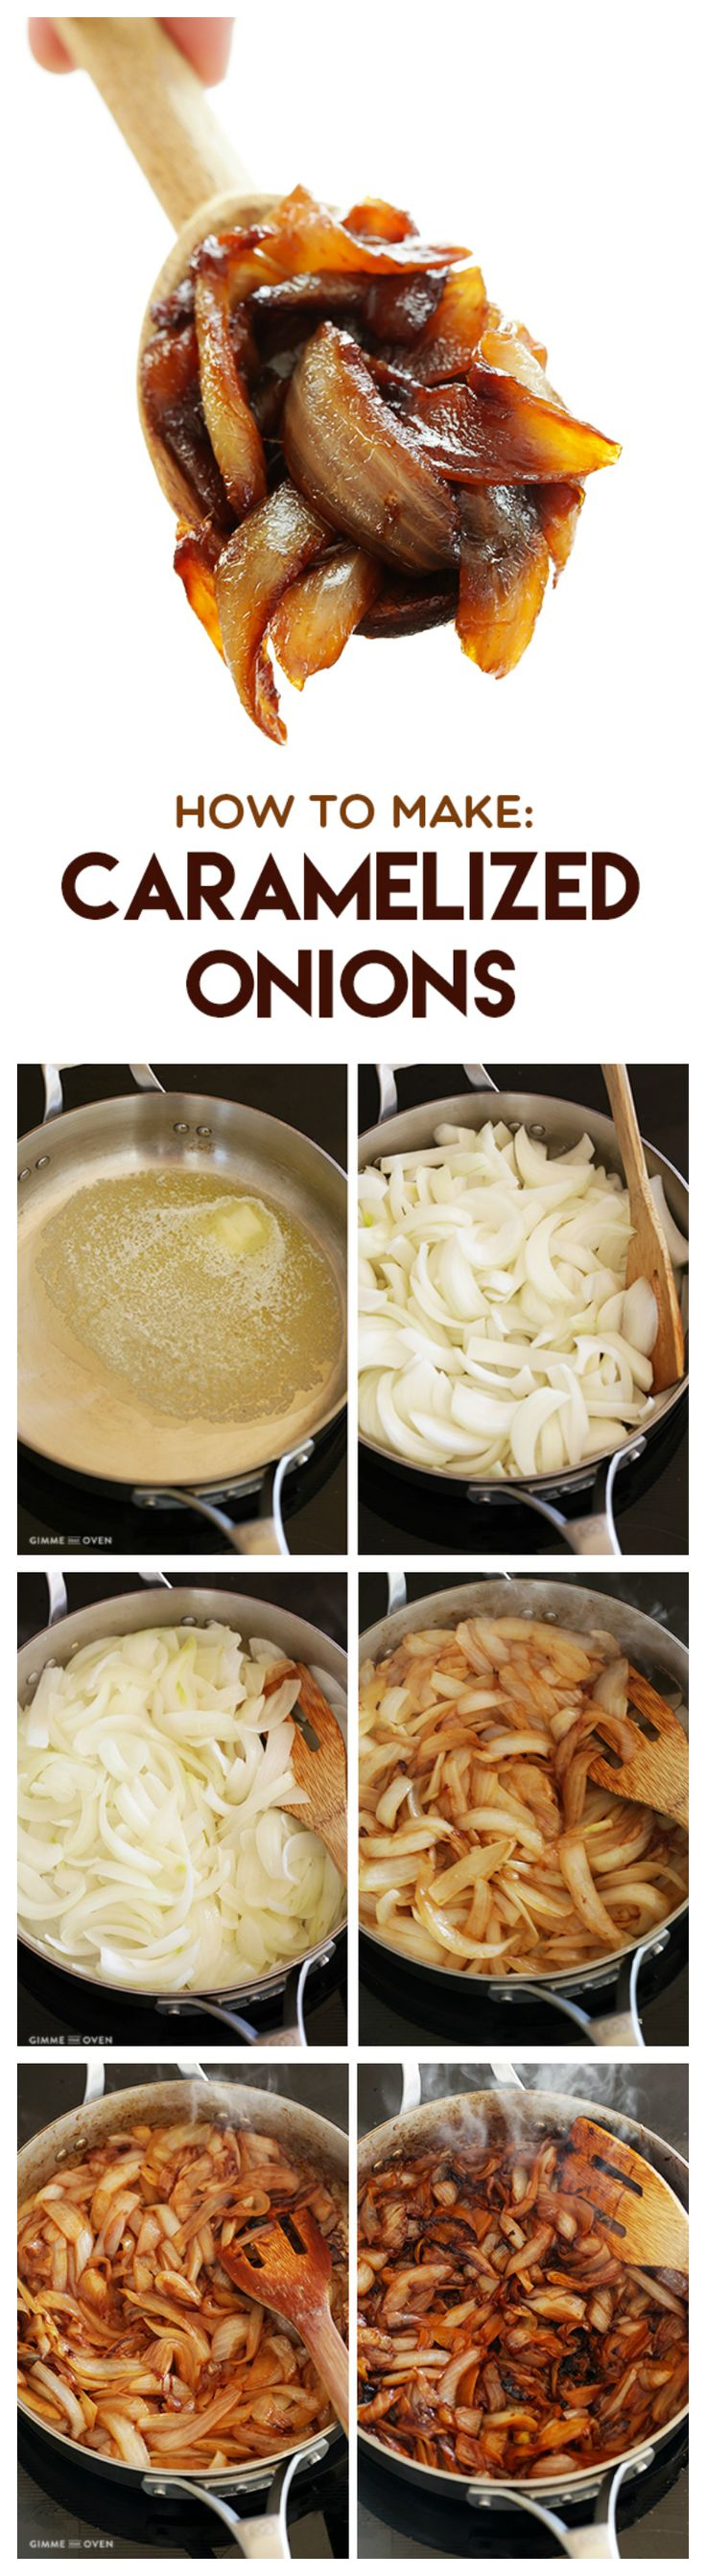 blue and white retro 6 How To Make Caramelized Onions    a step by step photo tutorial and recipe   gimmesomeoven com